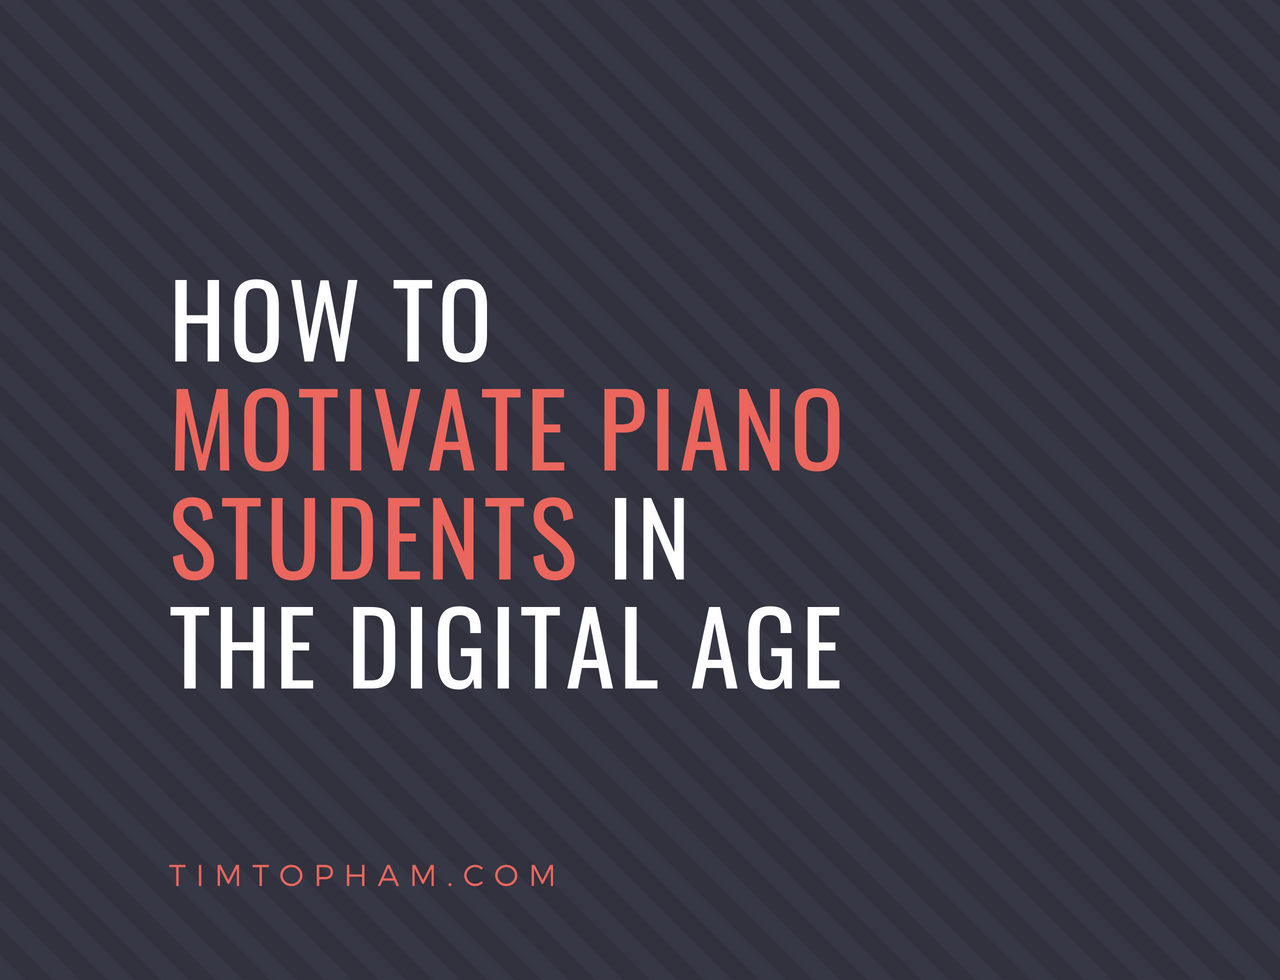 motivate piano students digital age